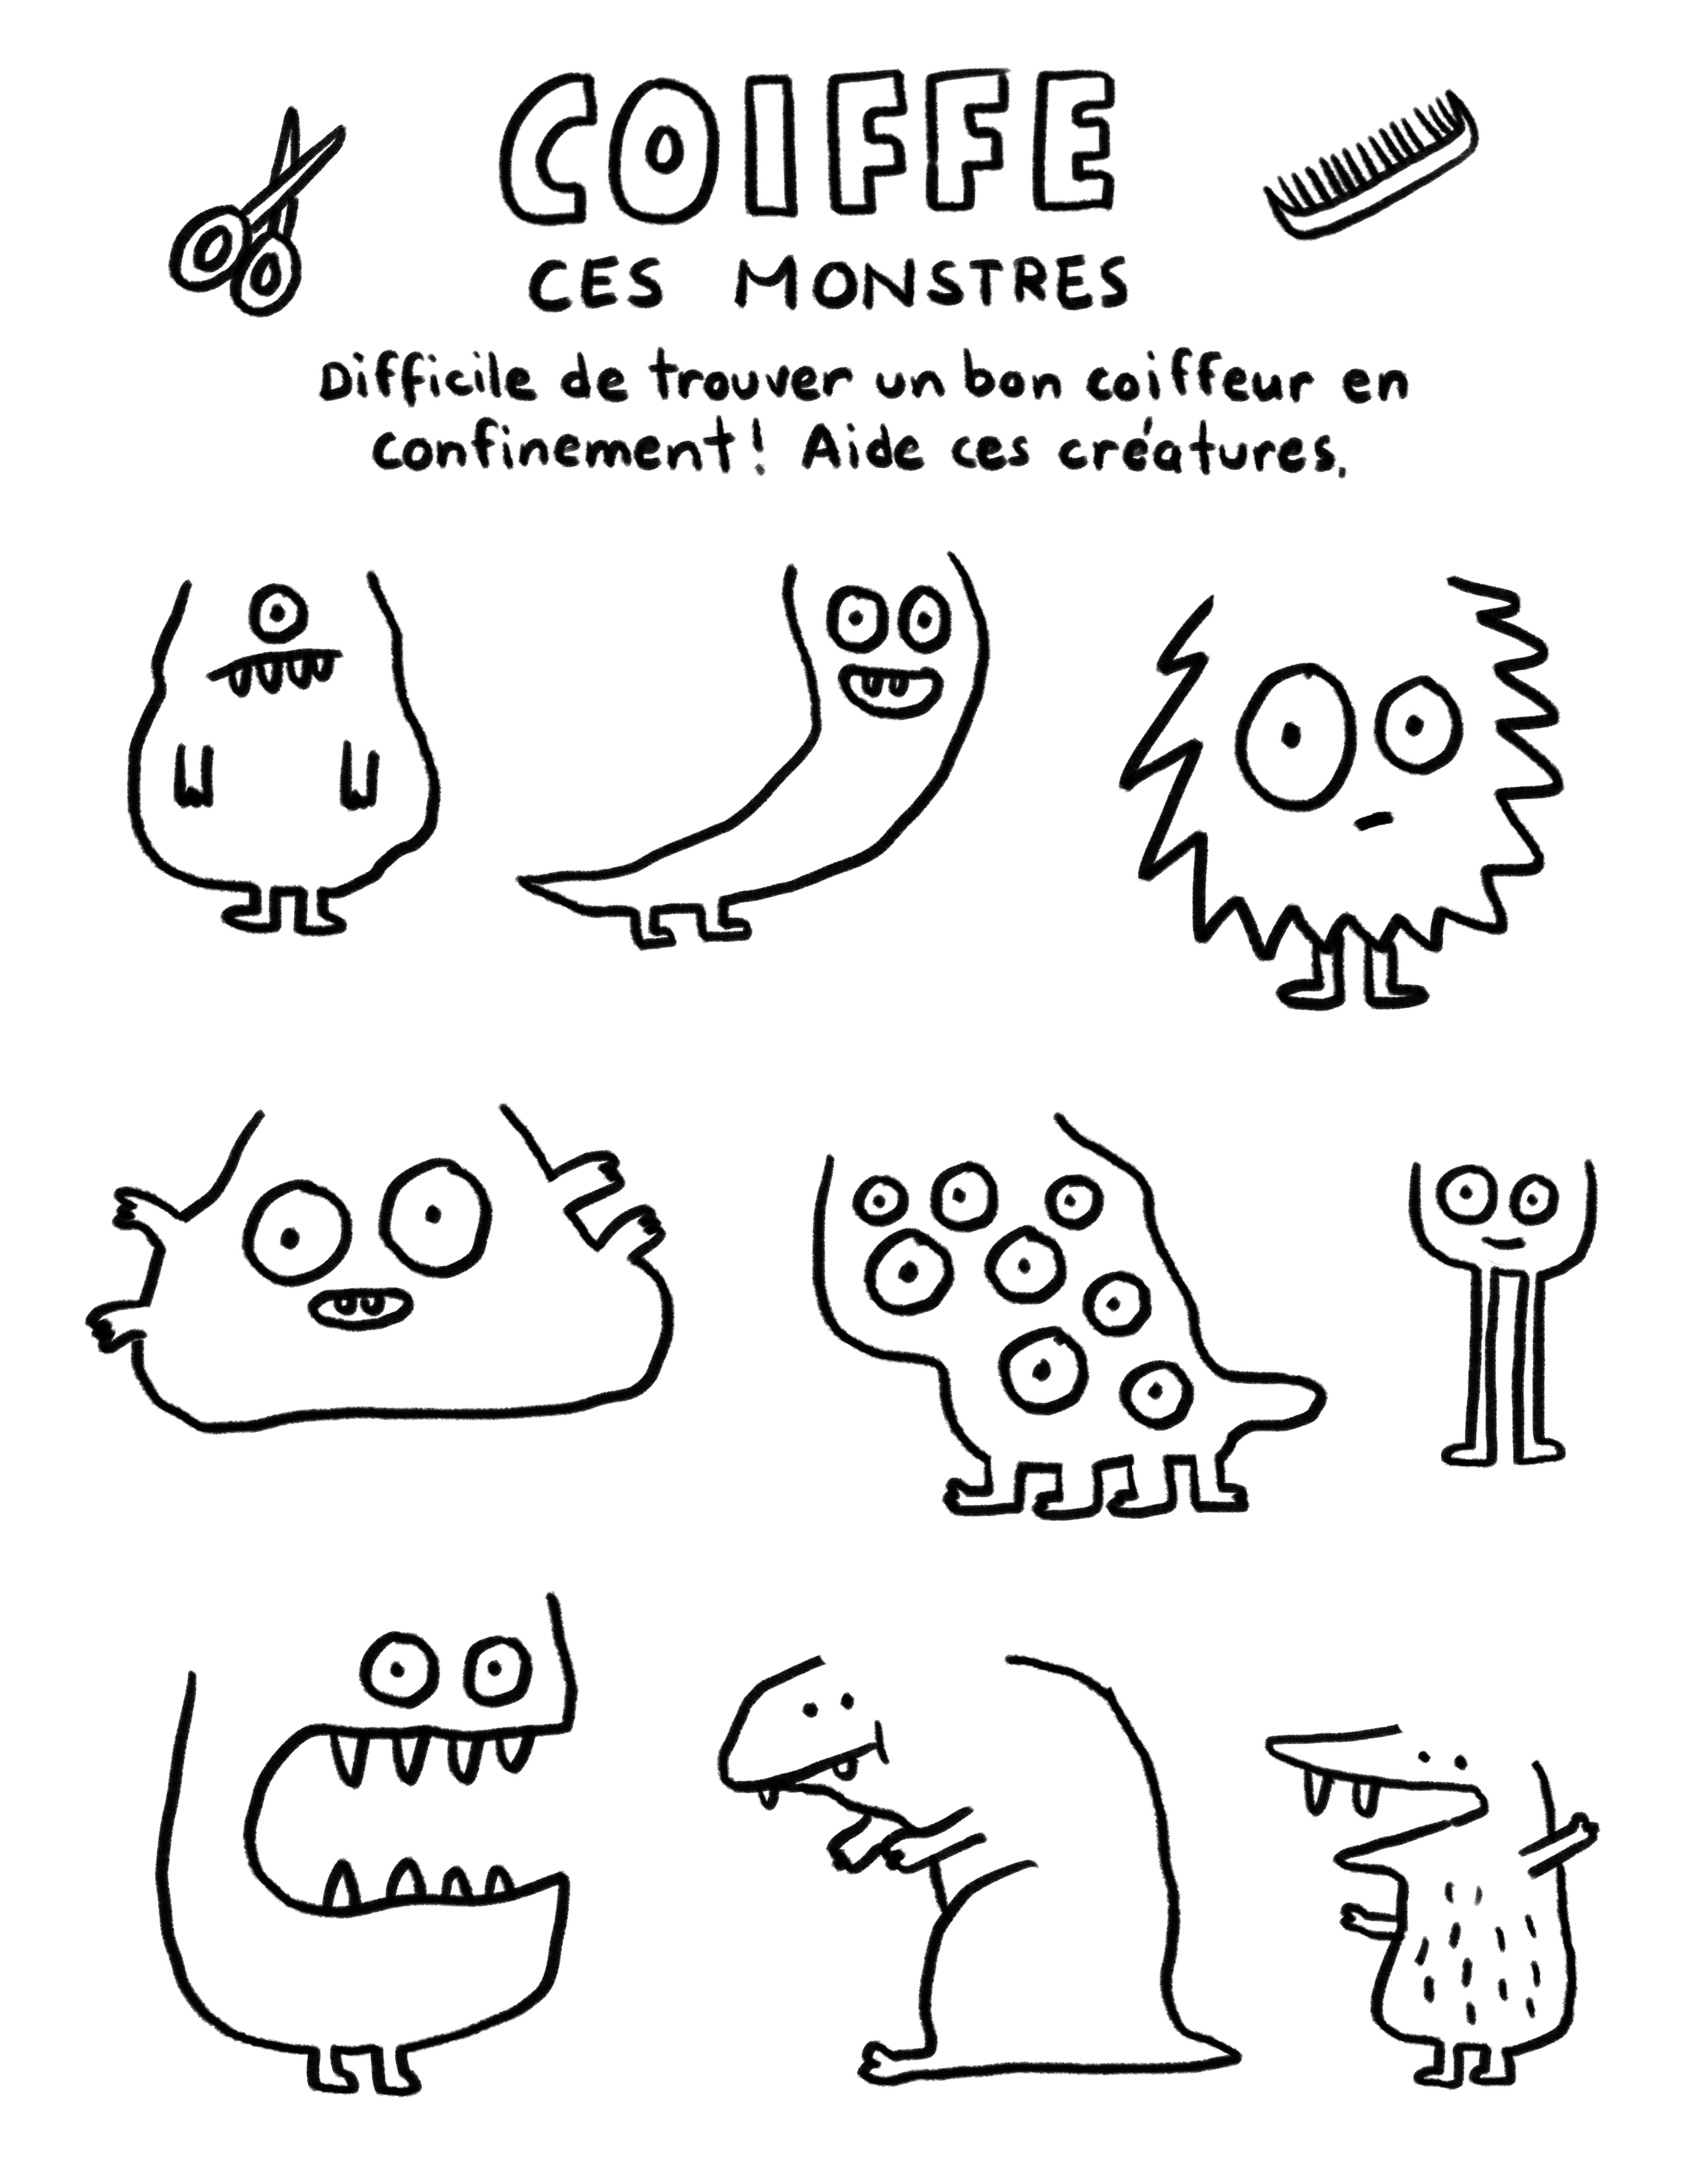 Coiffe ces monstres